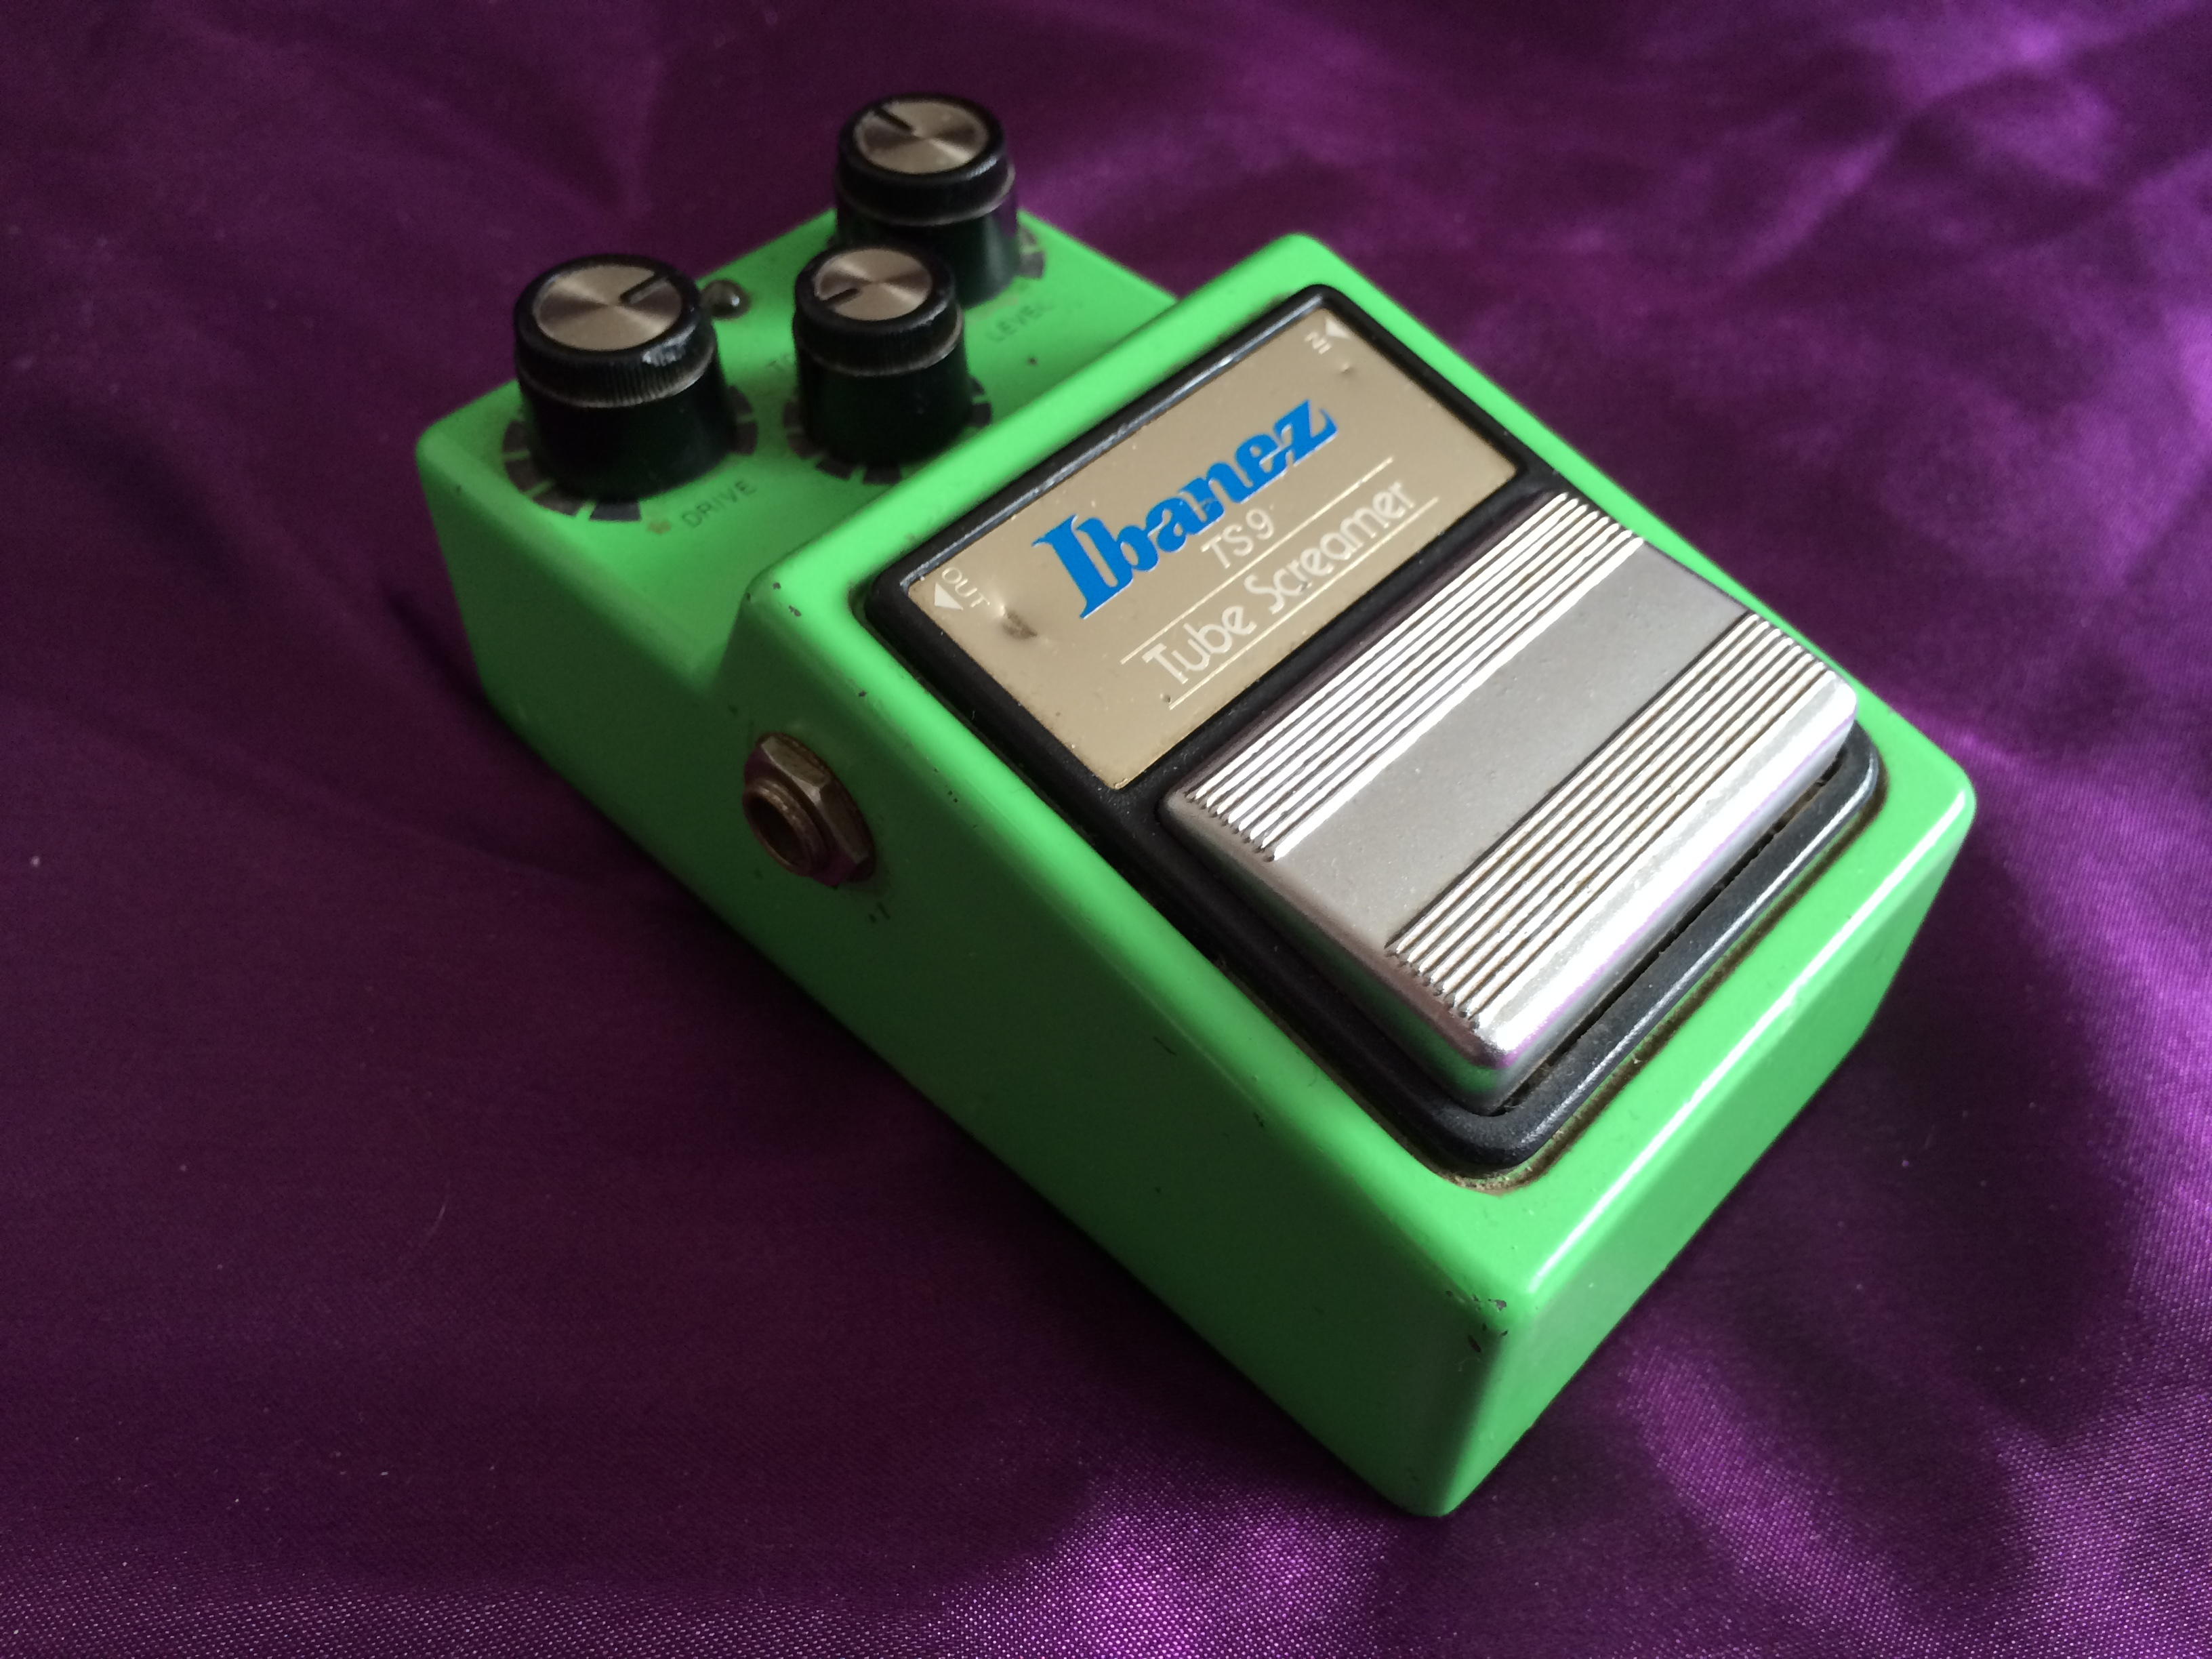 1981 Ibanez TS9 Tube Screamer